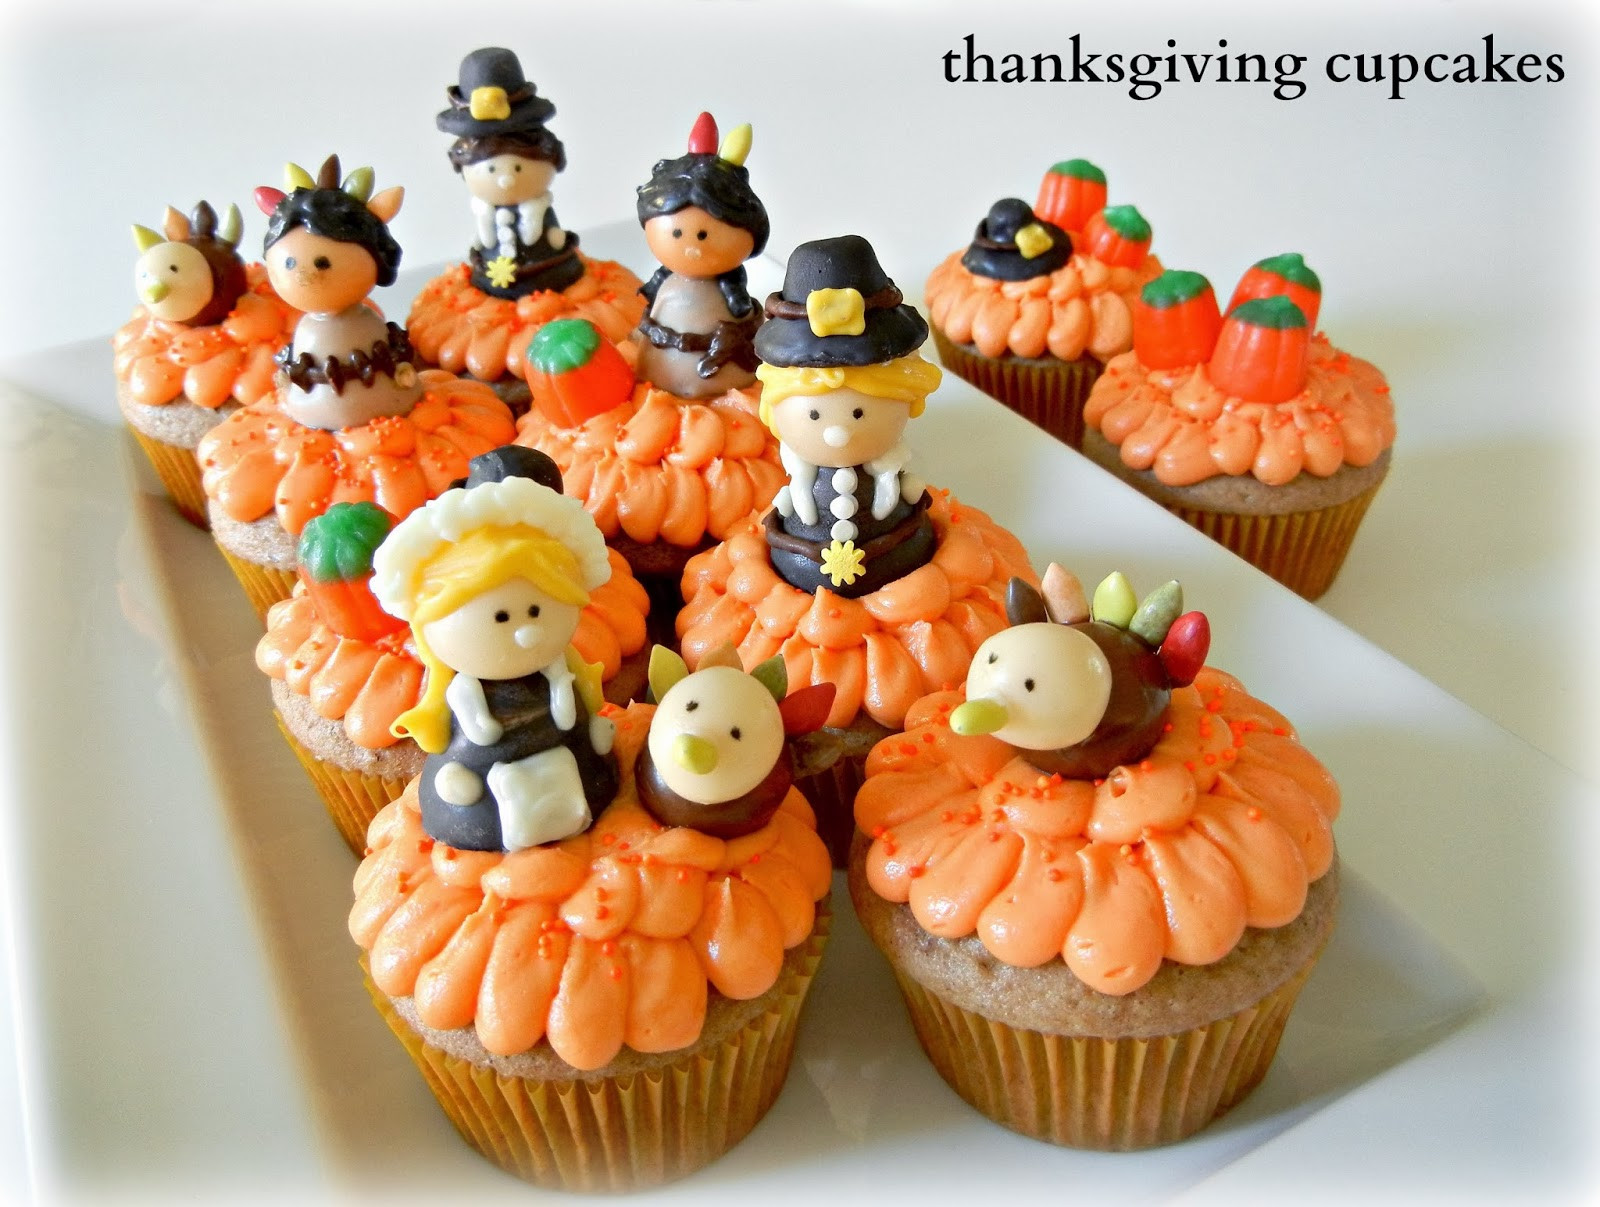 Thanksgiving Cupcakes Decorations  Sugar Swings Serve Some Thanksgiving Cupcakes with